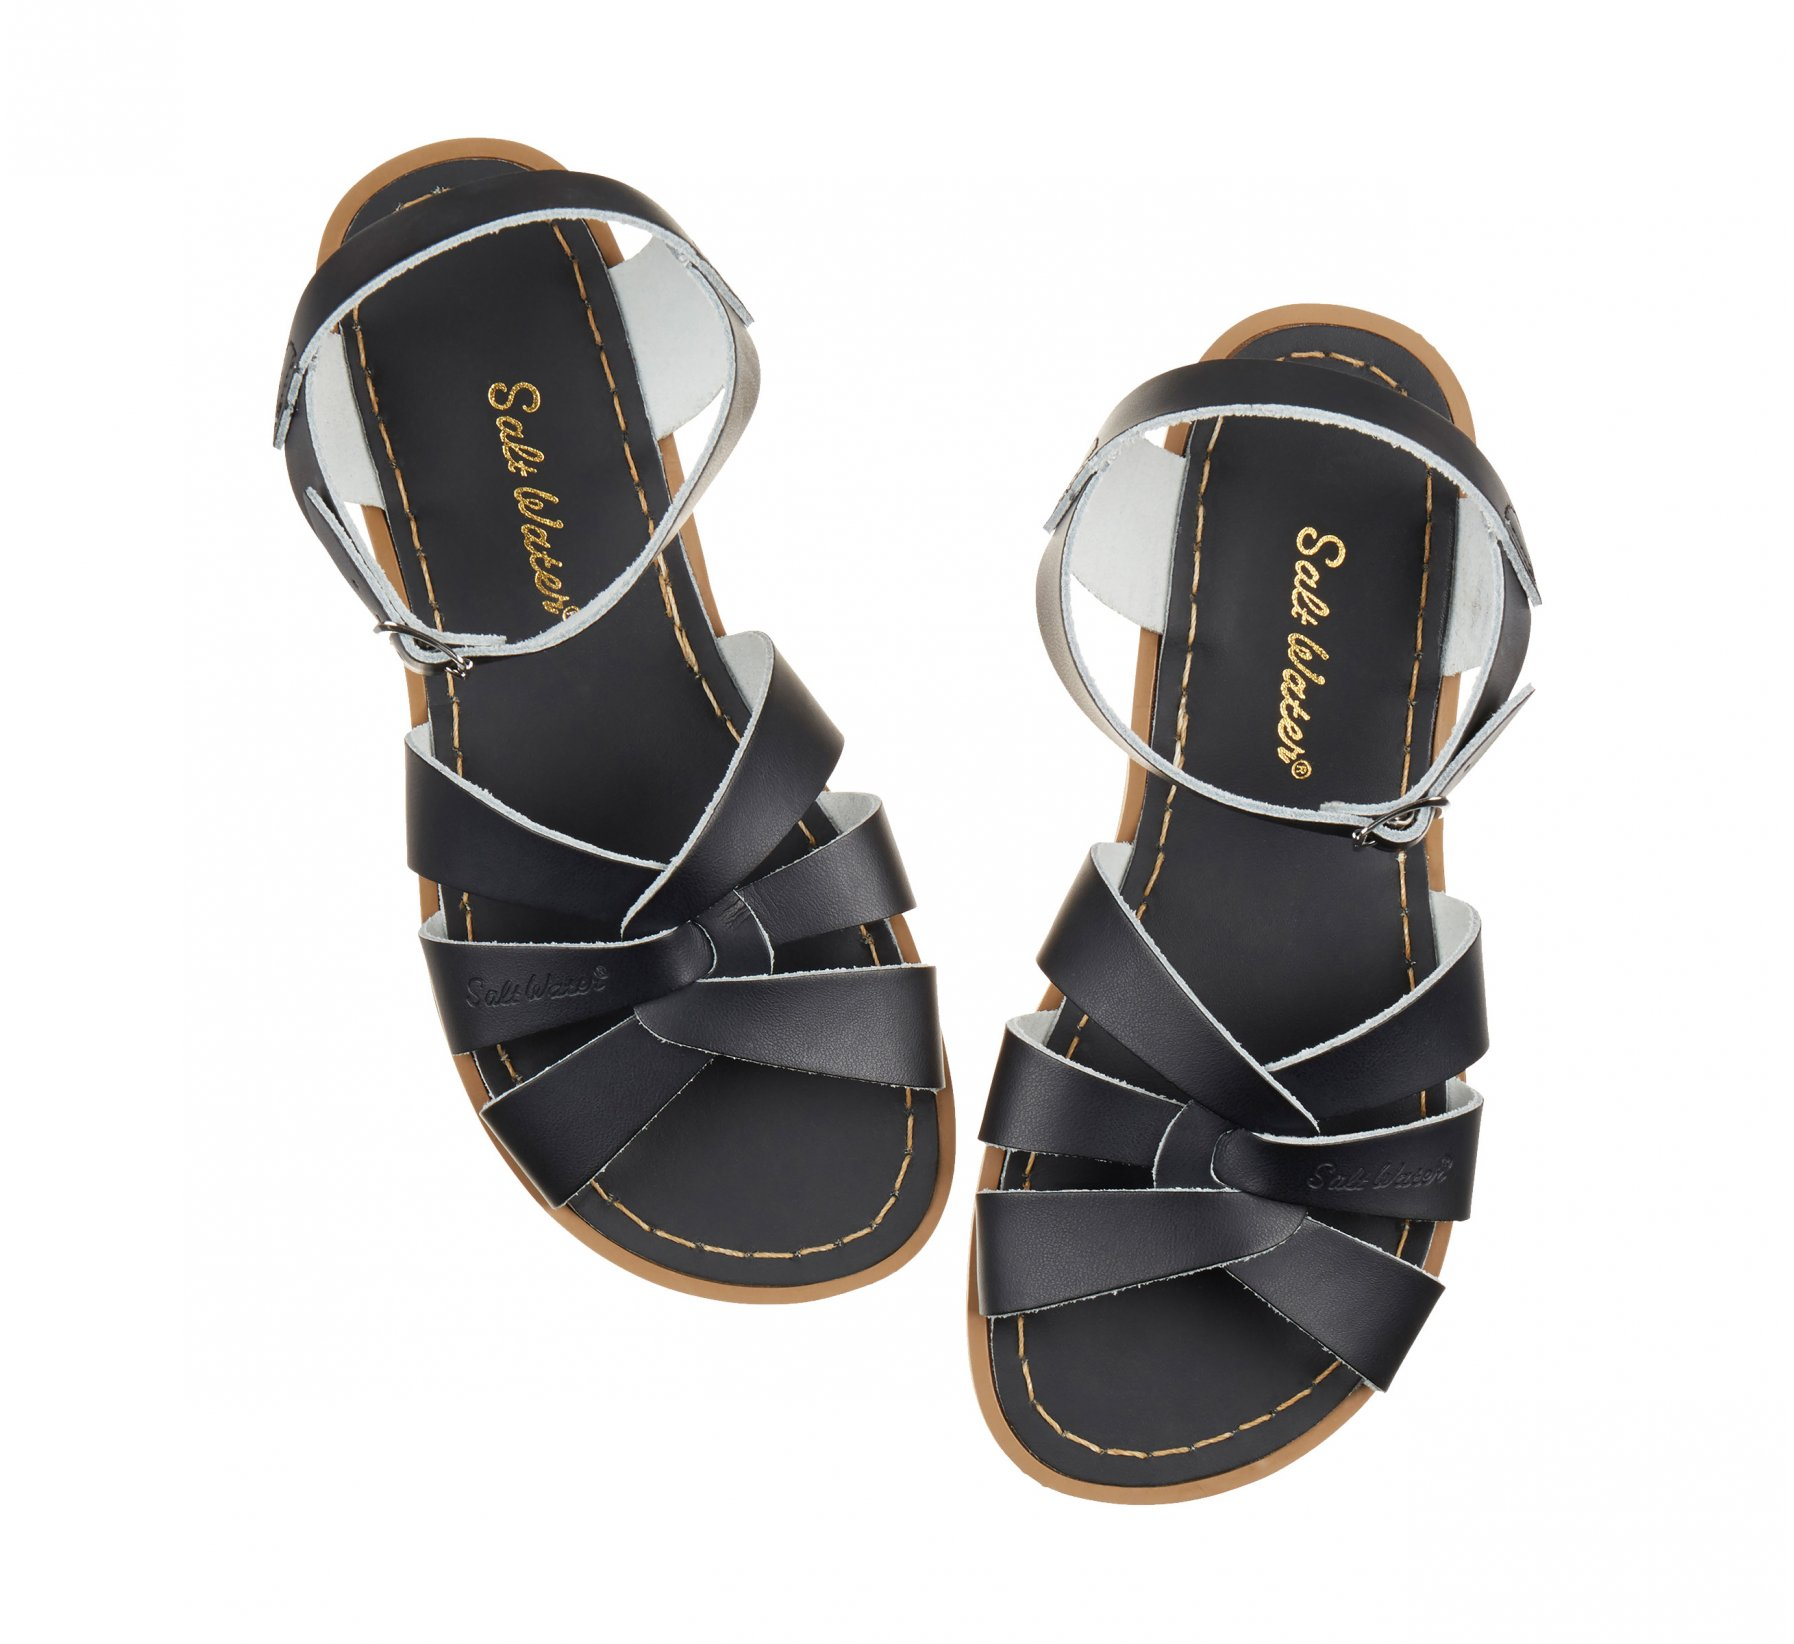 Original Biru Kelasi - Salt Water Sandals